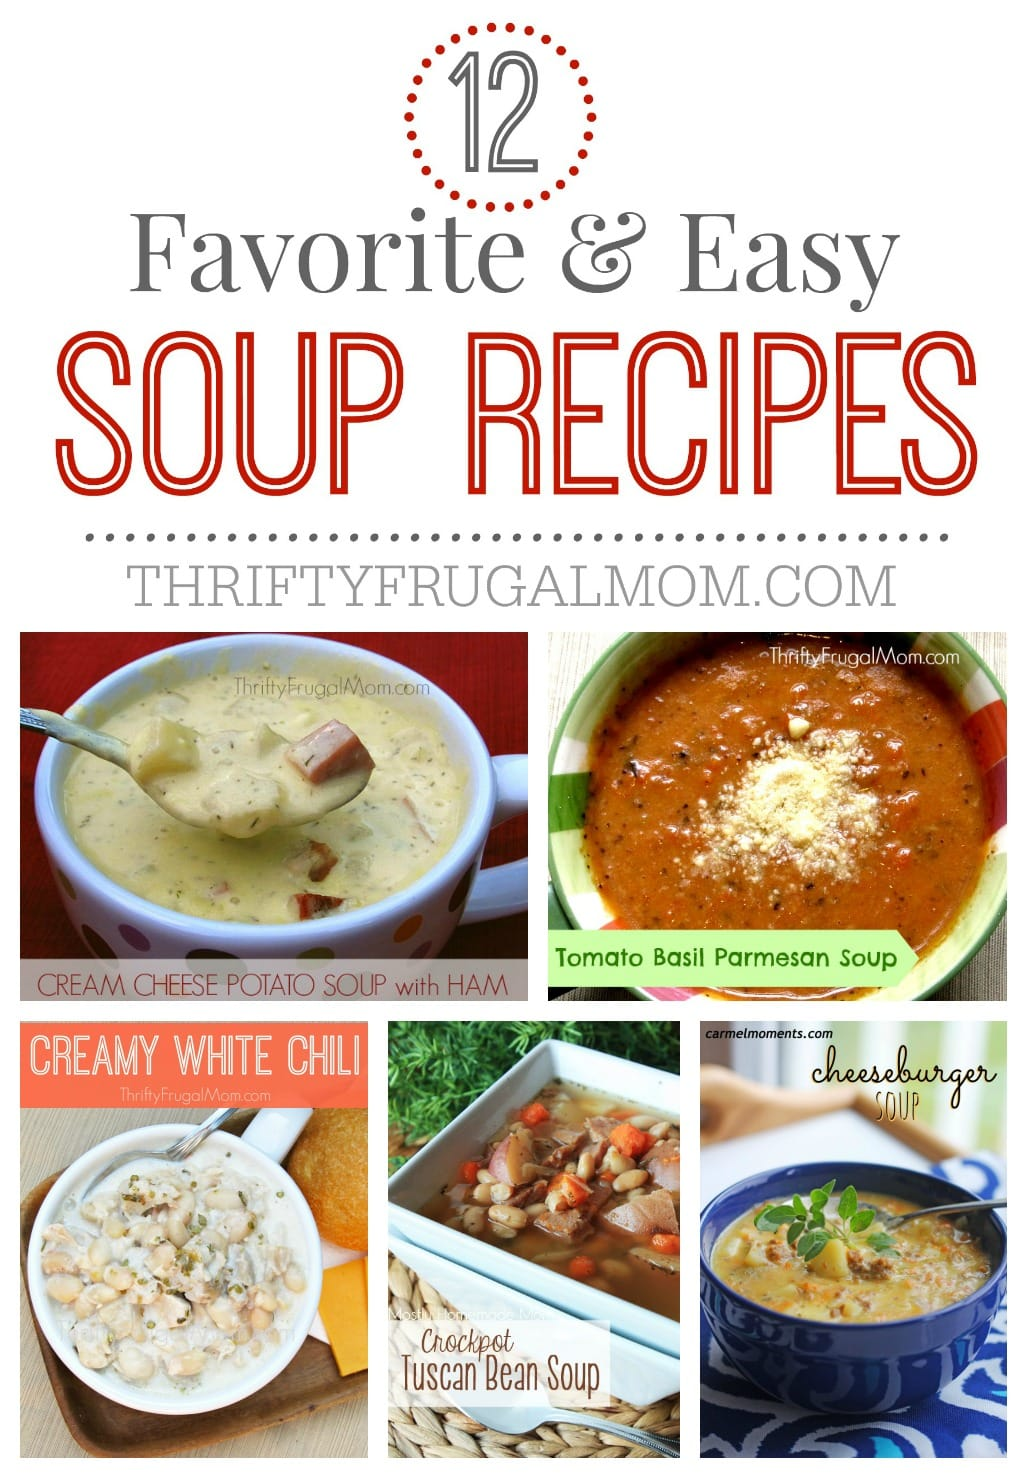 Looking for easy frugal meals? Try one of these favorite soup recipes! They're all loved by our family and are super tasty.